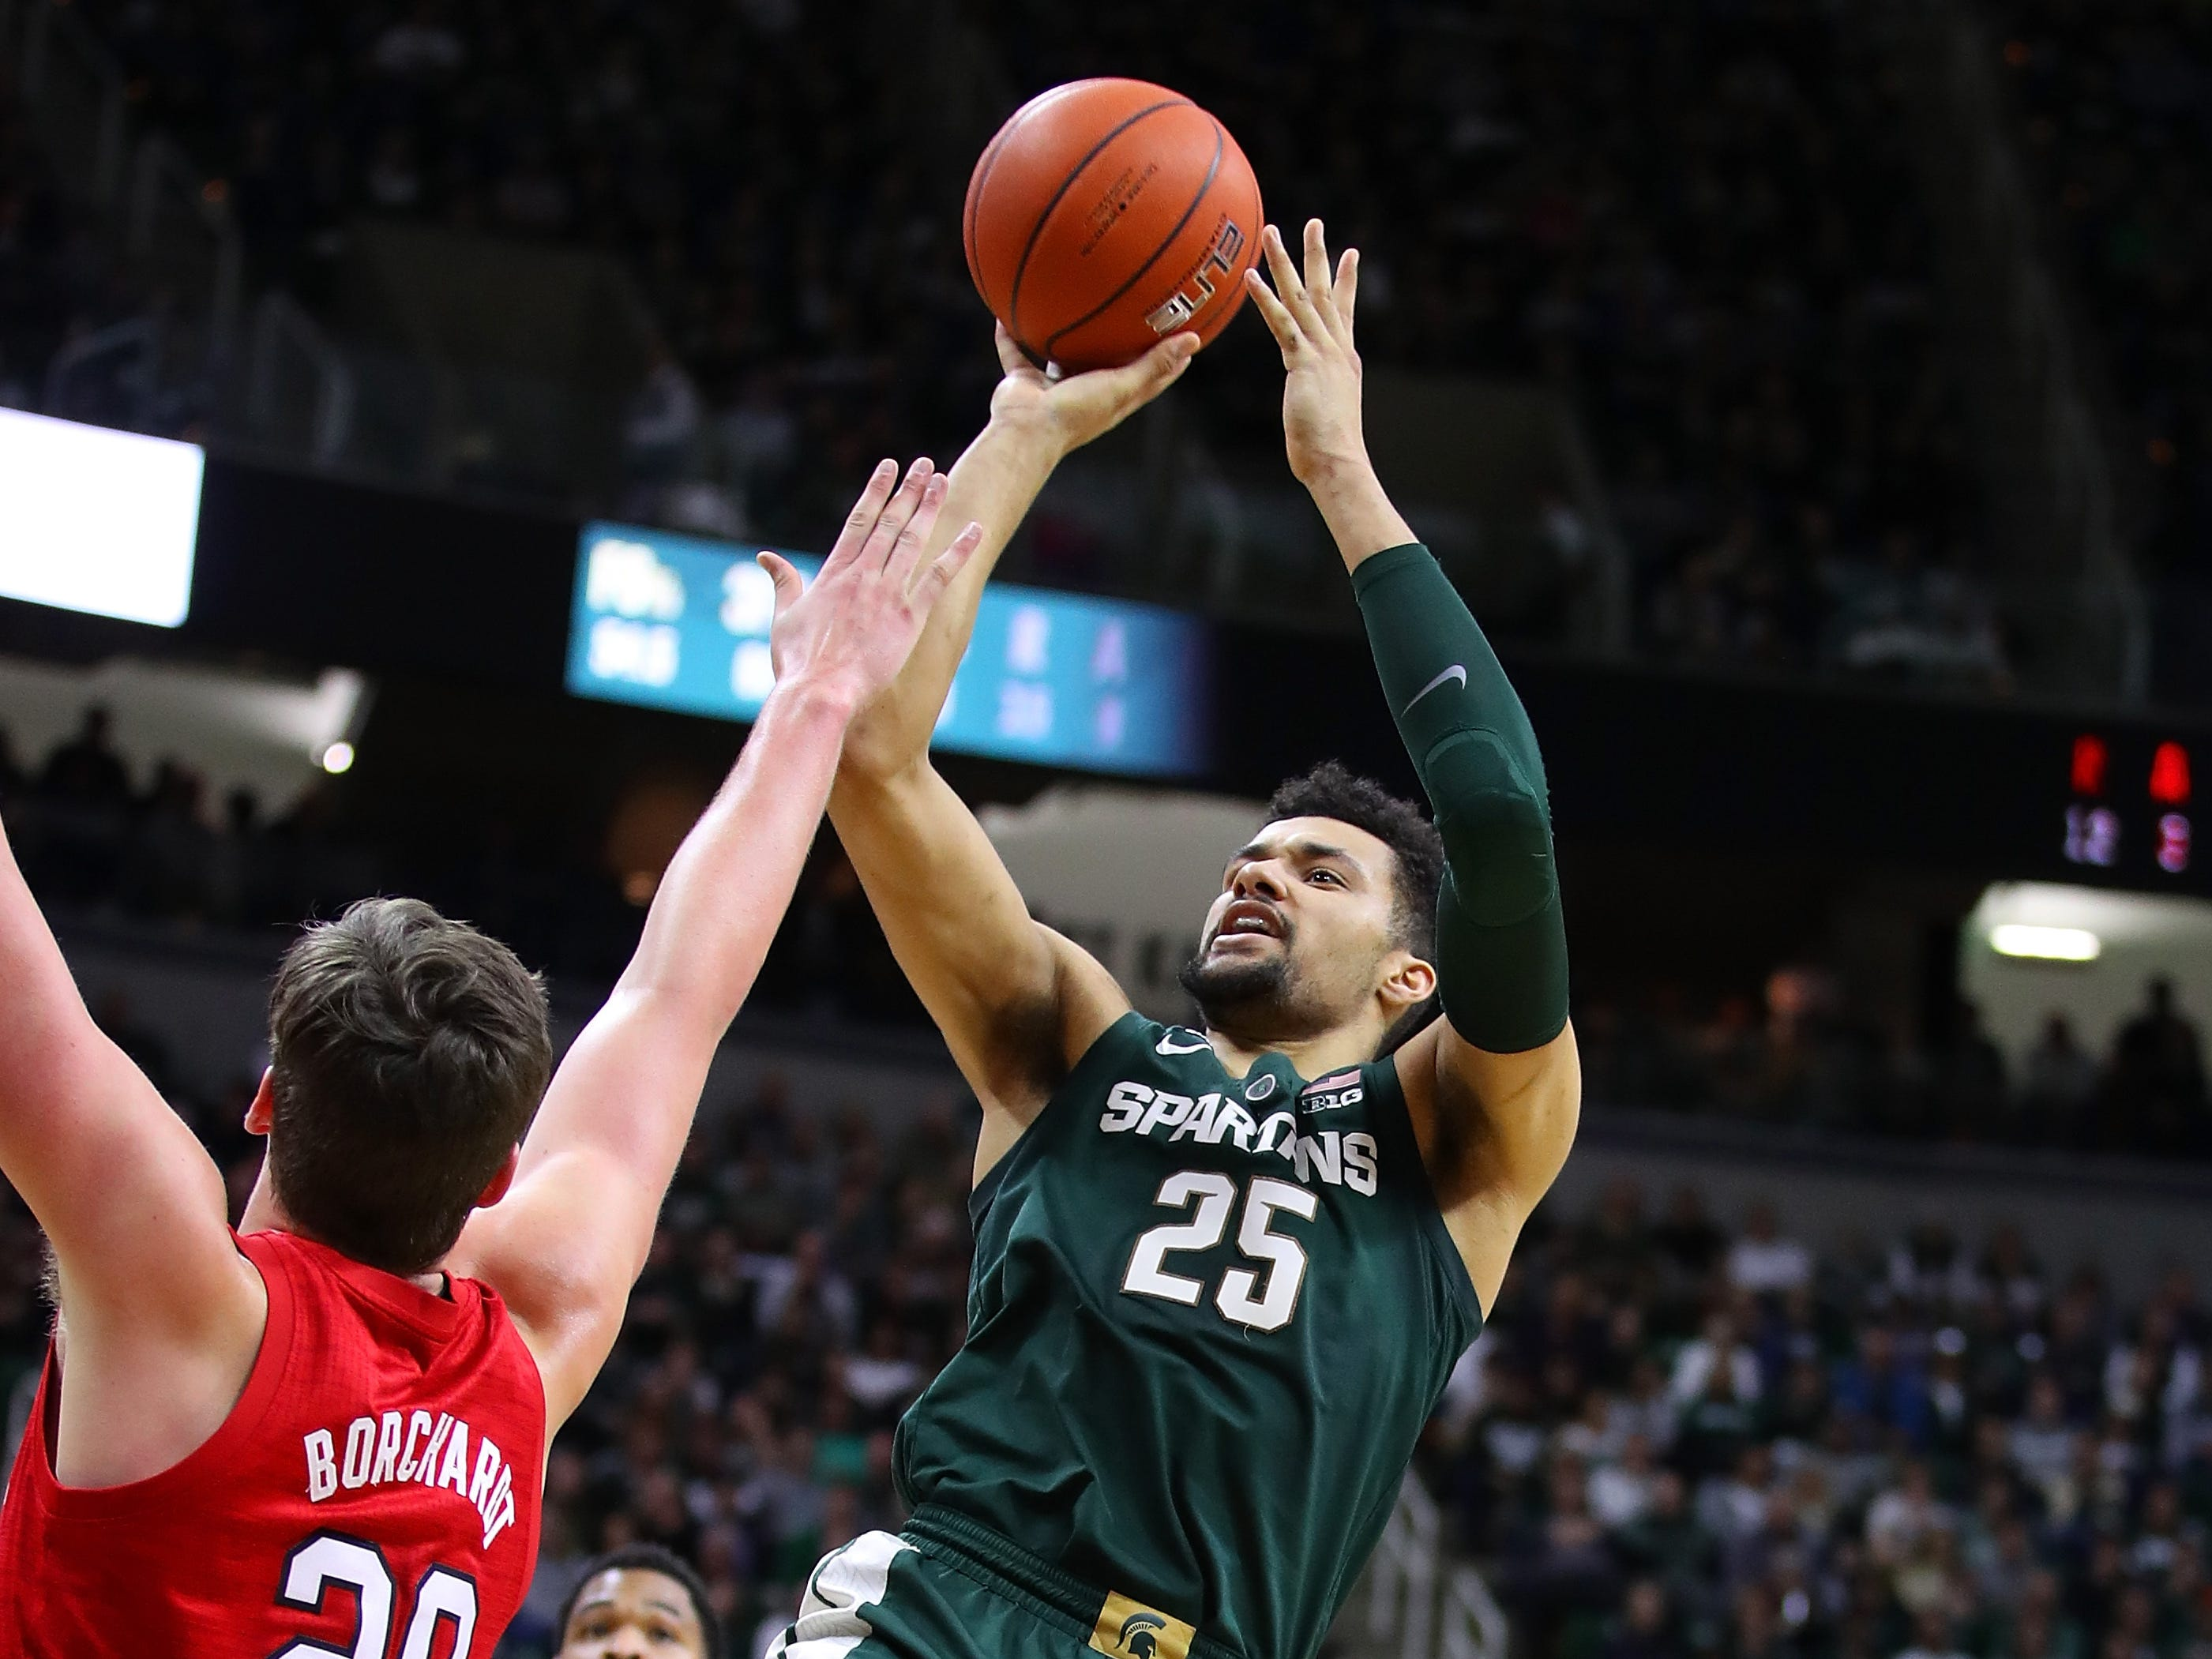 Kenny Goins (25) of the Michigan State Spartans takes a first half shot over Tanner Borchardt (20) of the Nebraska Cornhuskers at Breslin Center on March 05, 2019 in East Lansing, Michigan.